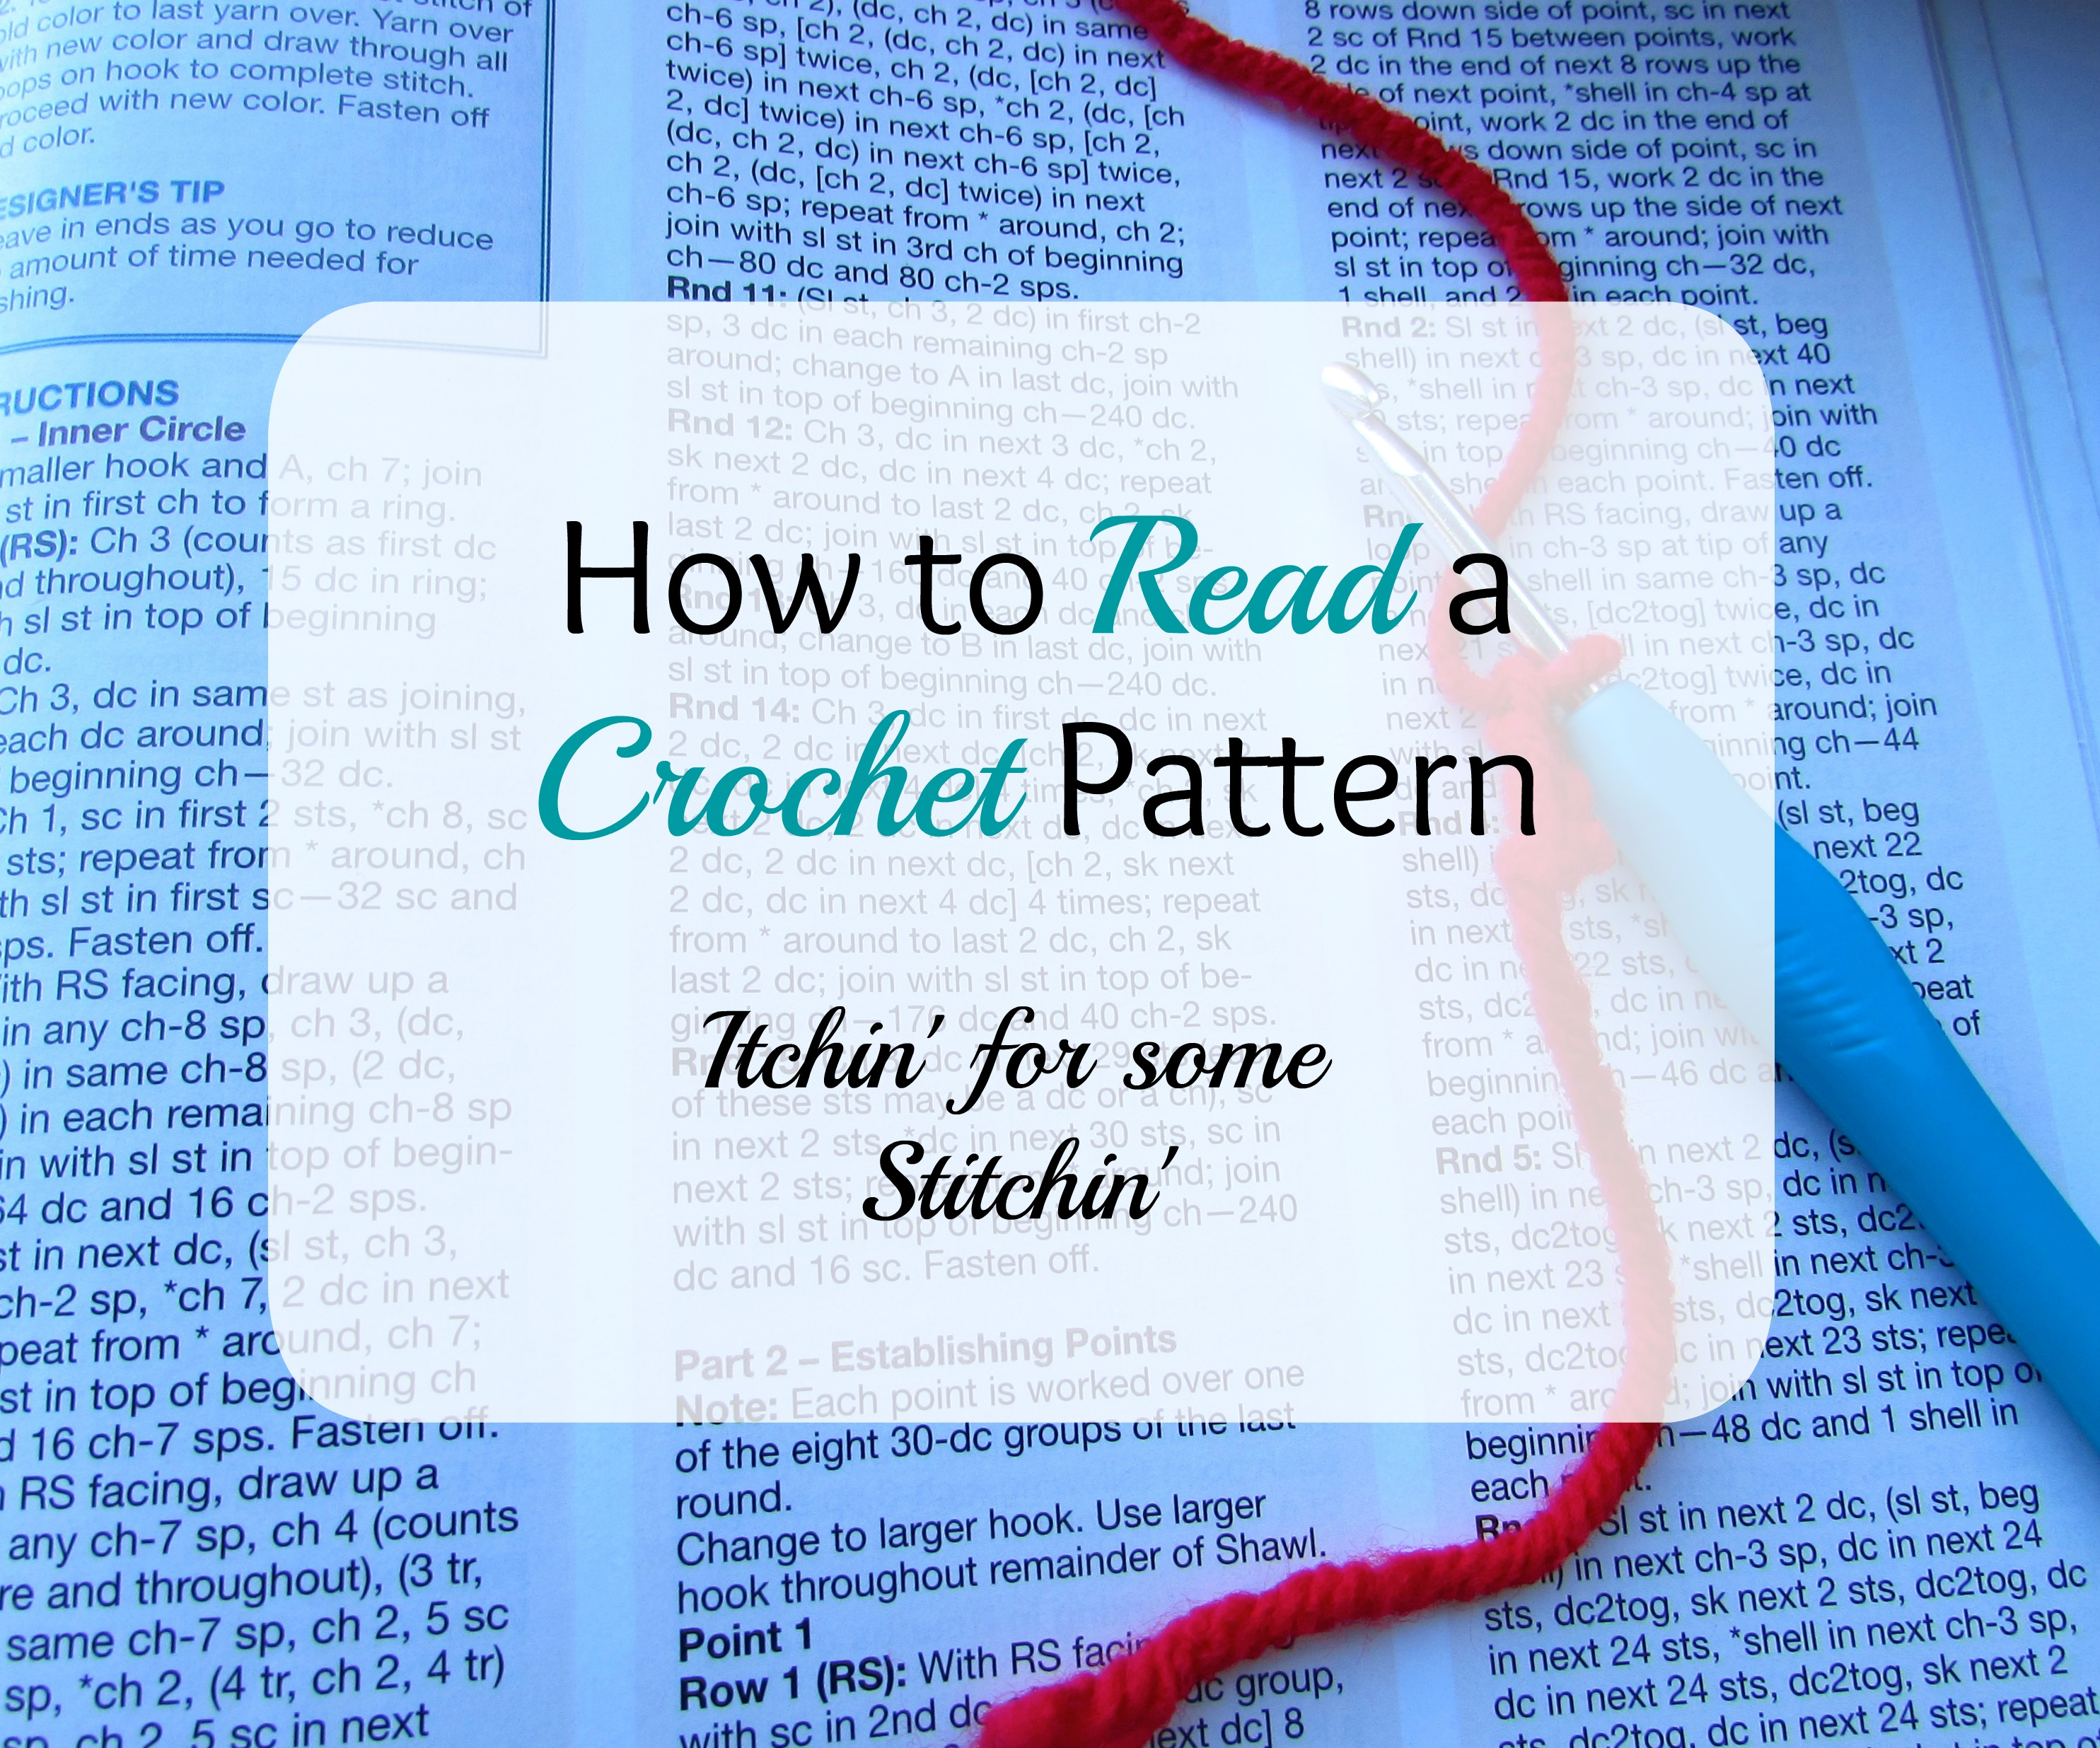 How to read a crochet pattern for beginners itchin for some how to read a crochet pattern for beginners itchin for some stitchin pooptronica